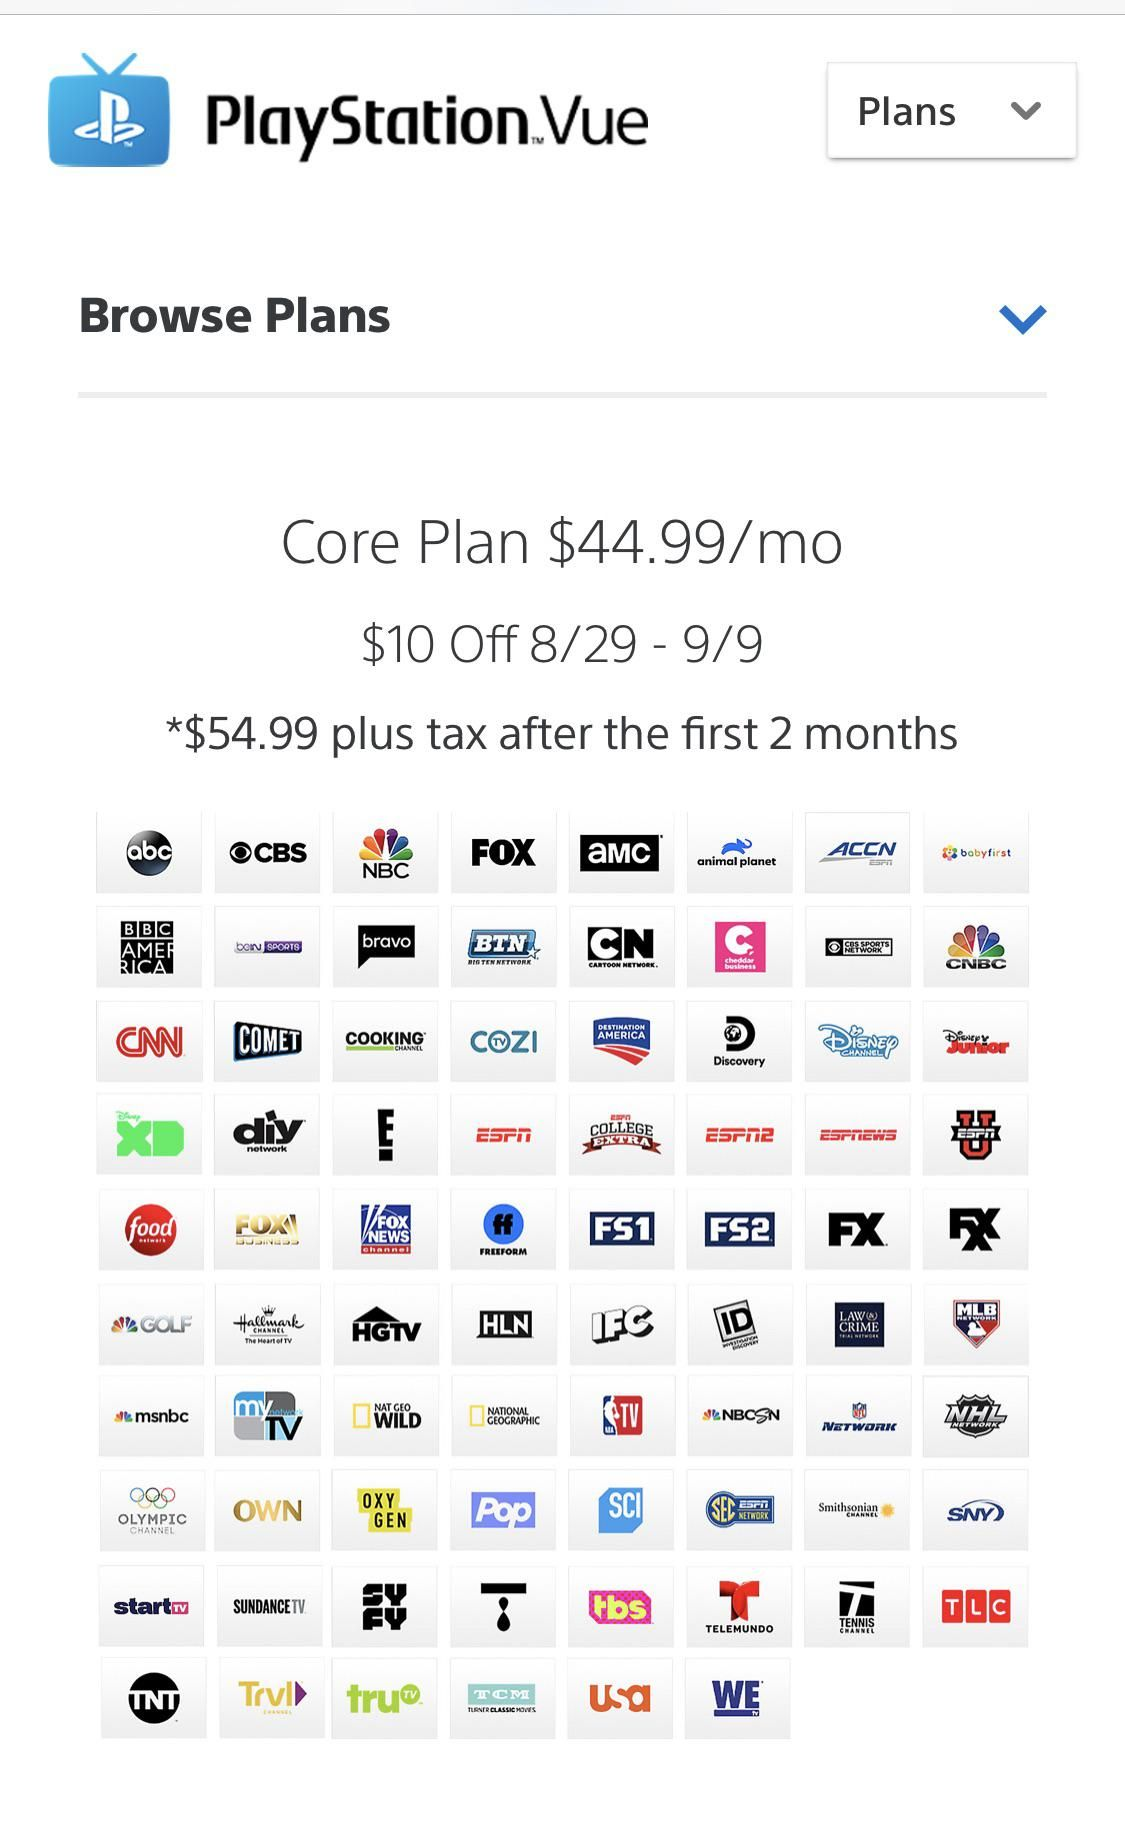 PS Vue Core 10 off until 9/9. Story of my life...I signed